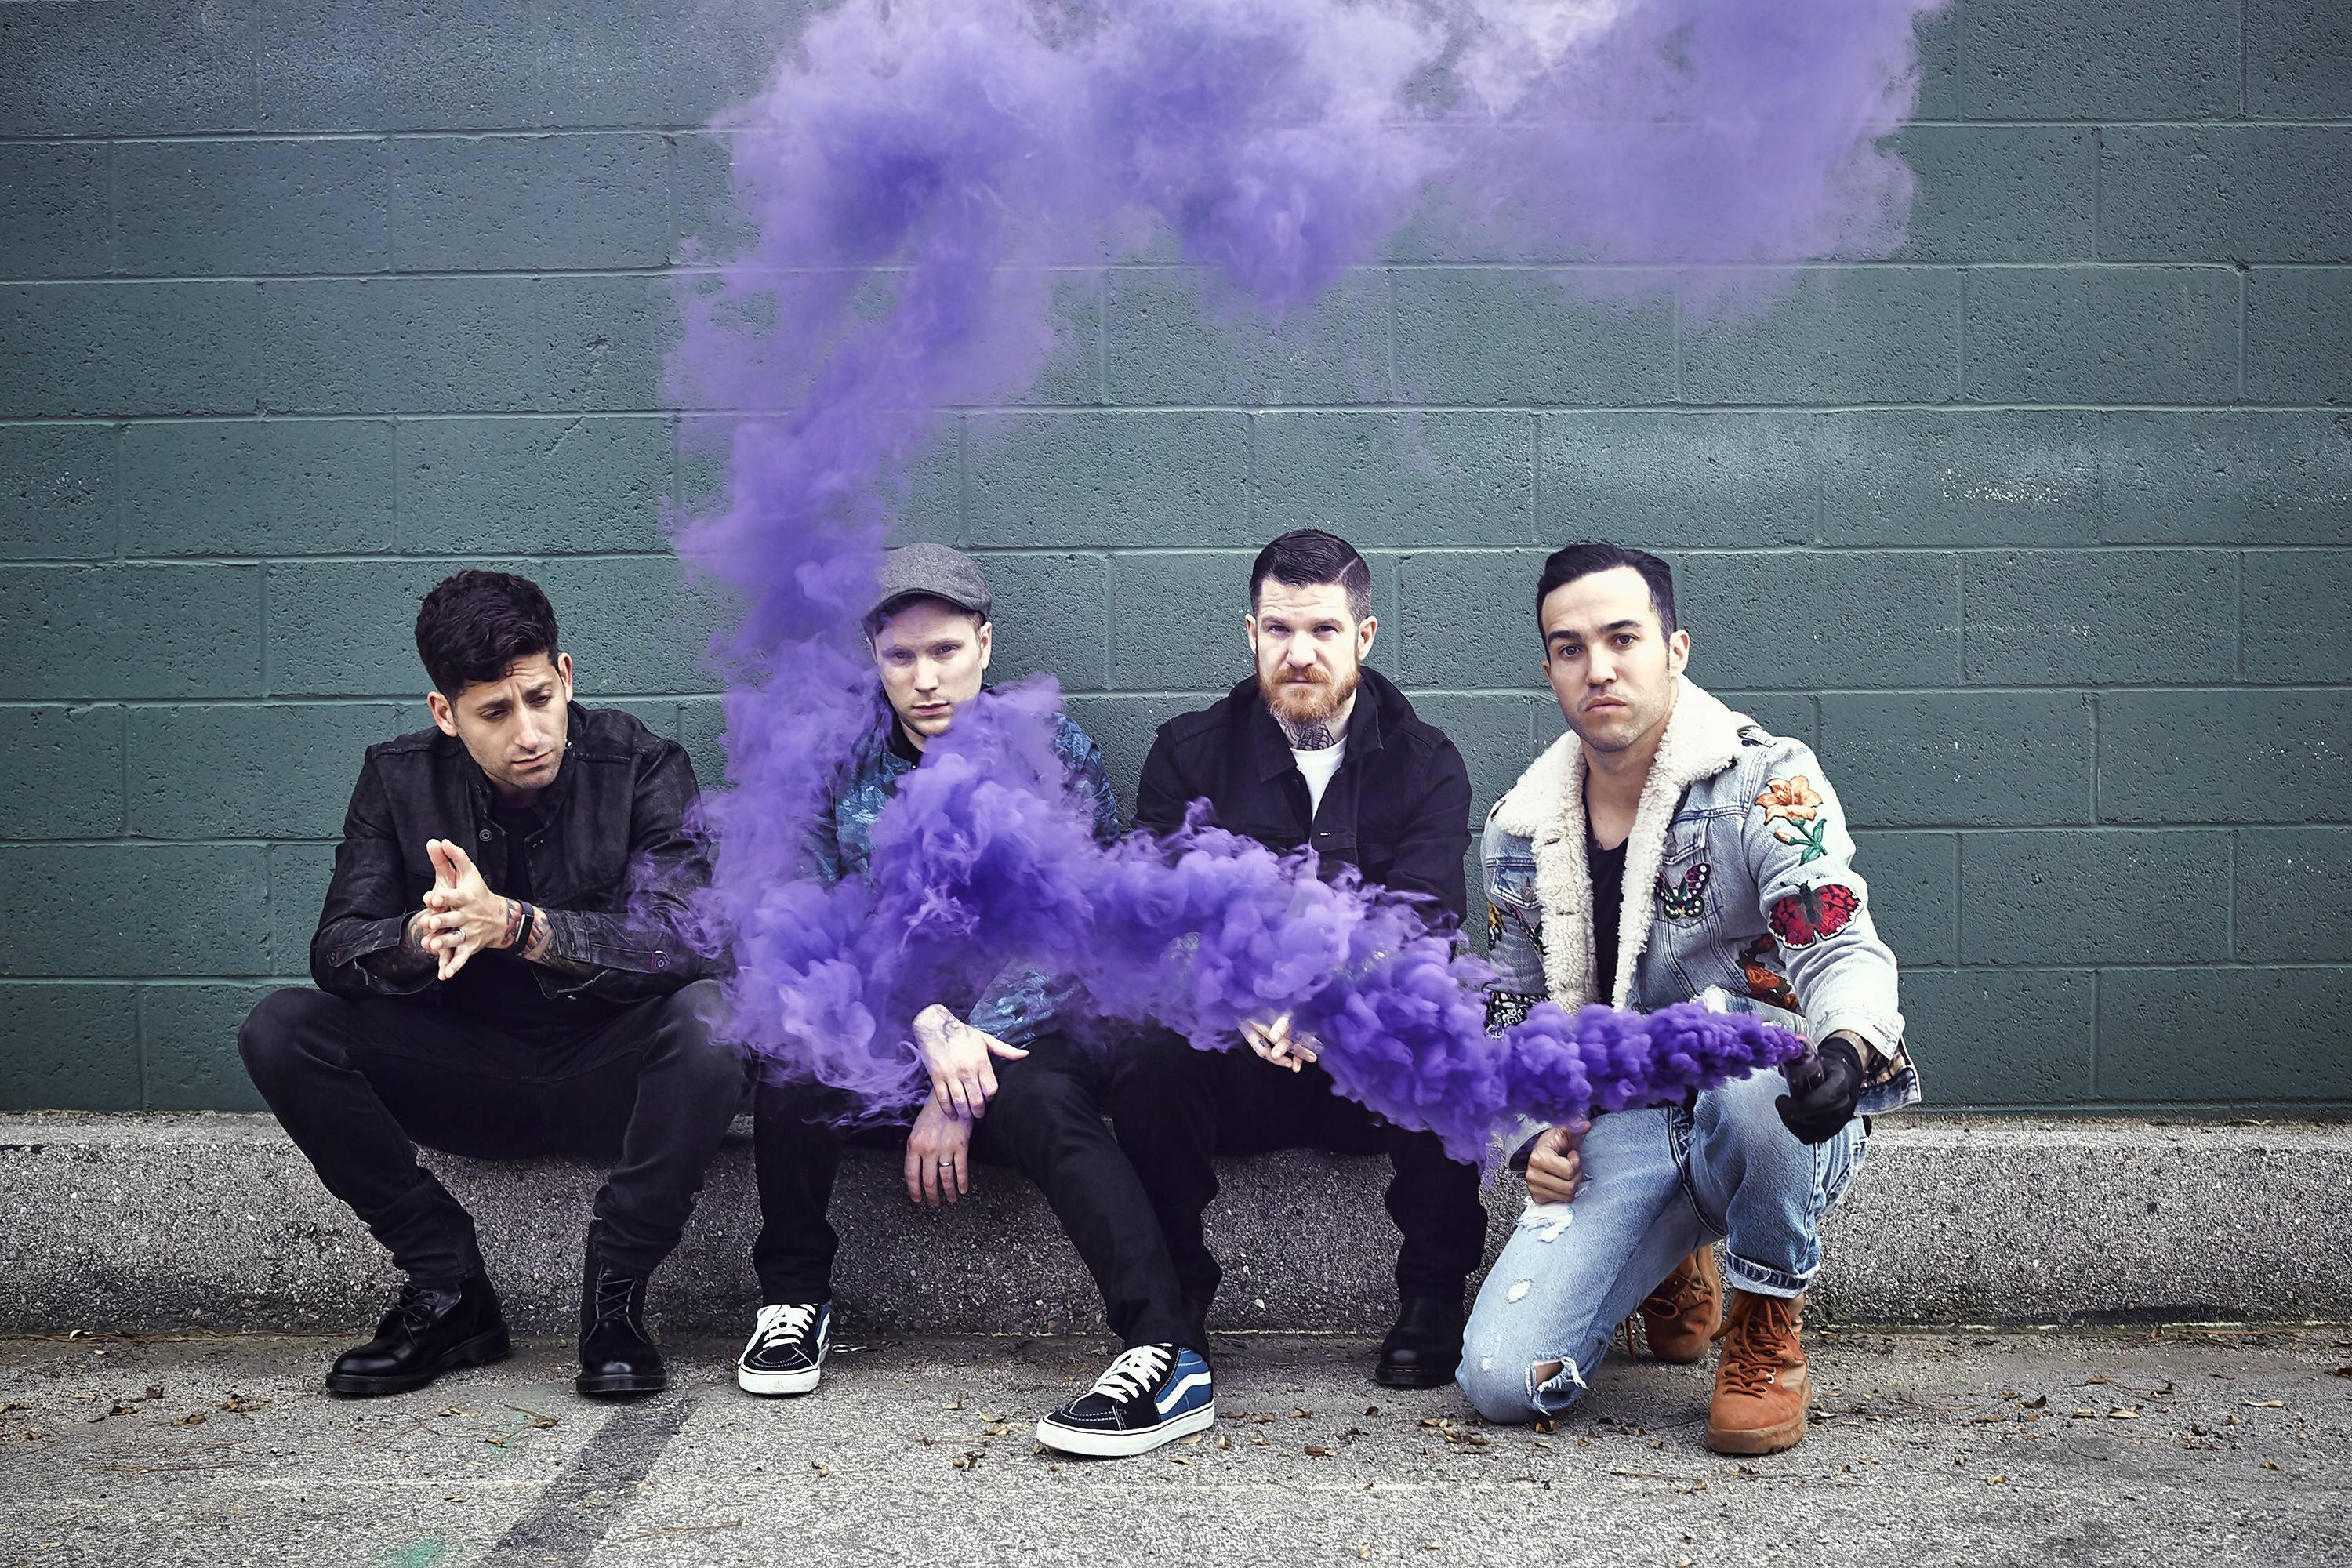 Tickets go on sale Friday, Jan. 26, for Fall Out Boy's Sept. 8 show, when they'll headline Wrigley Field with Rise Against and Machine Gun Kelly.